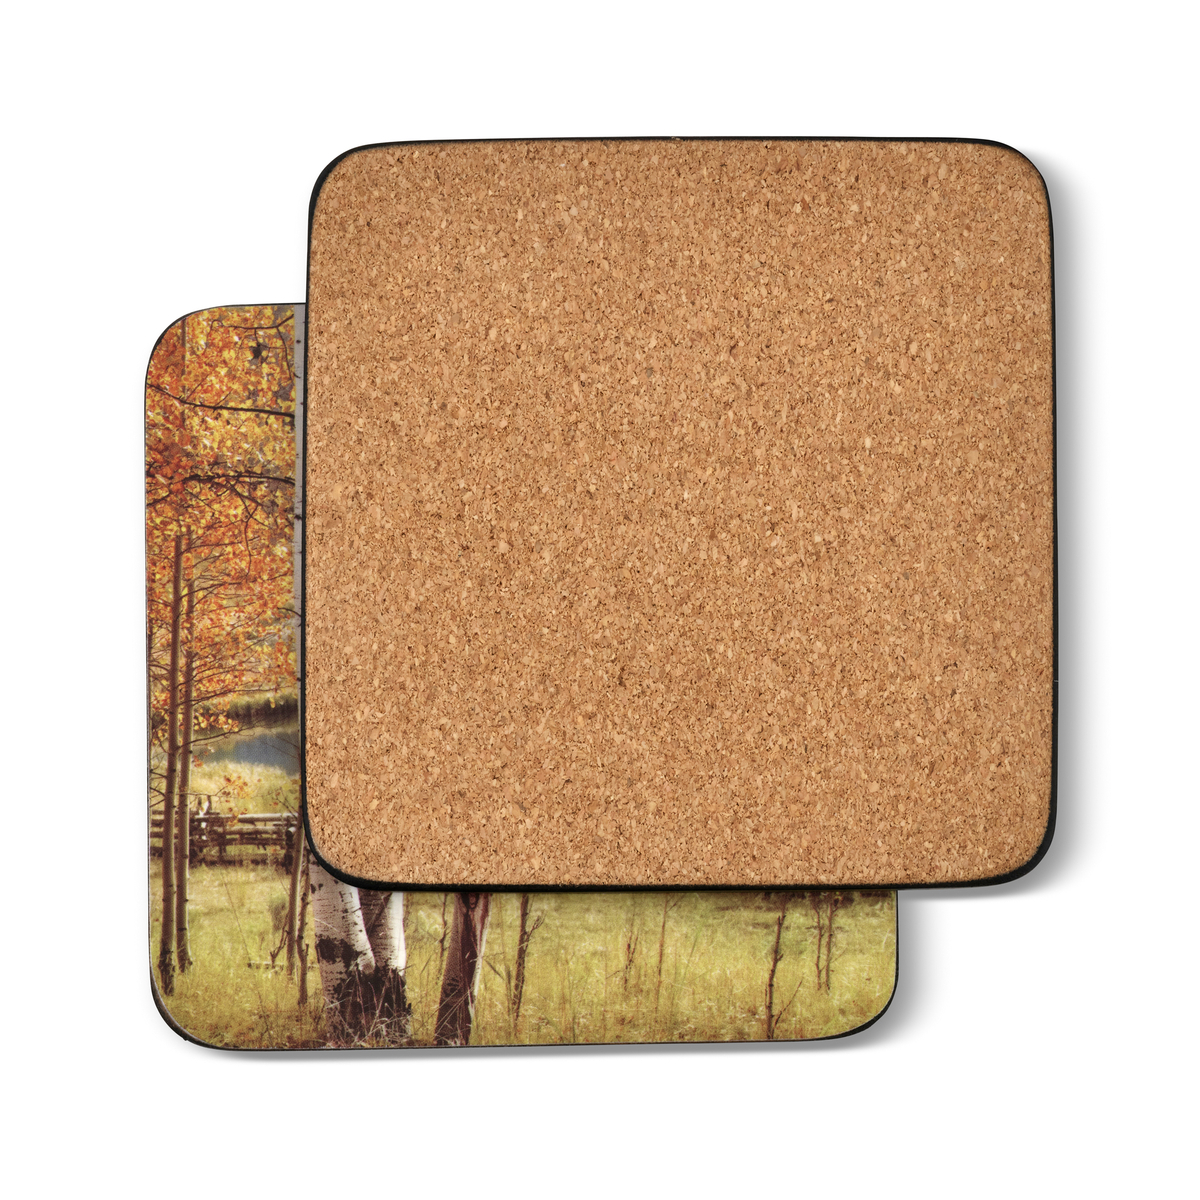 Pimpernel Birch Beauty Coasters Set of 6 image number 1